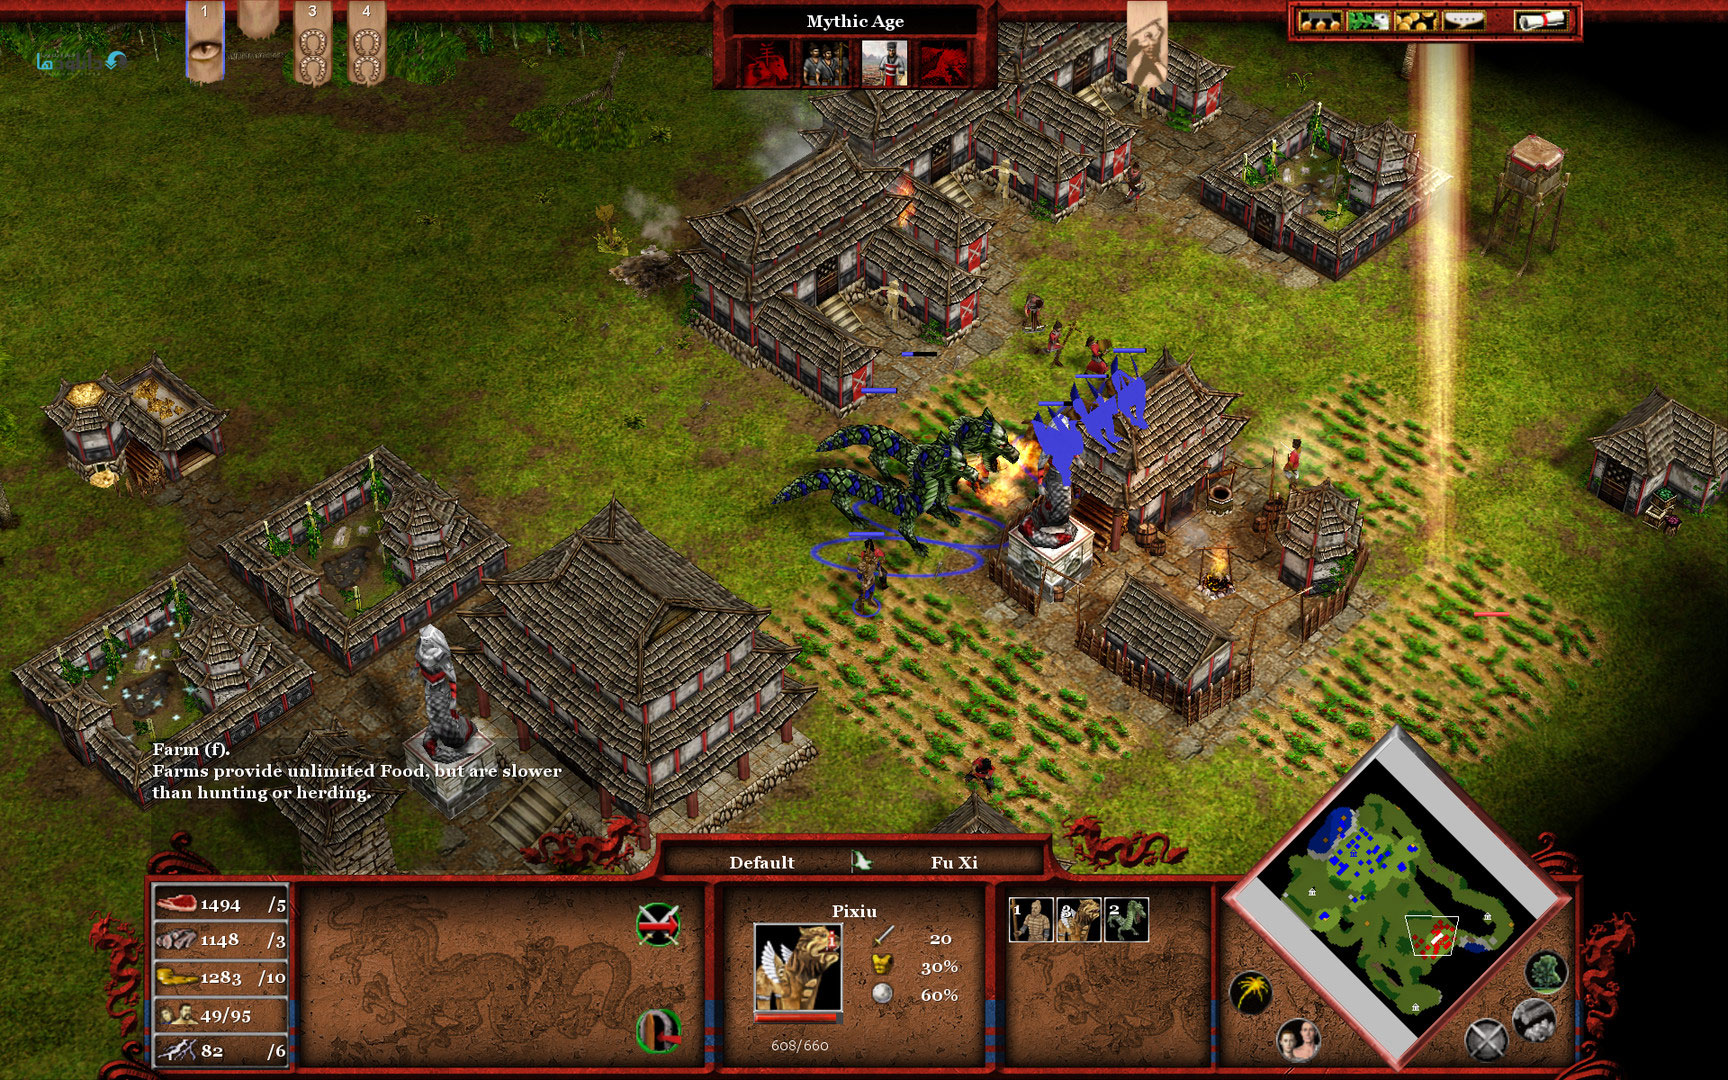 WatFile.com Download Free Age of Mythology Extended Edition Tale of a Dragon screenshots 01 tiny